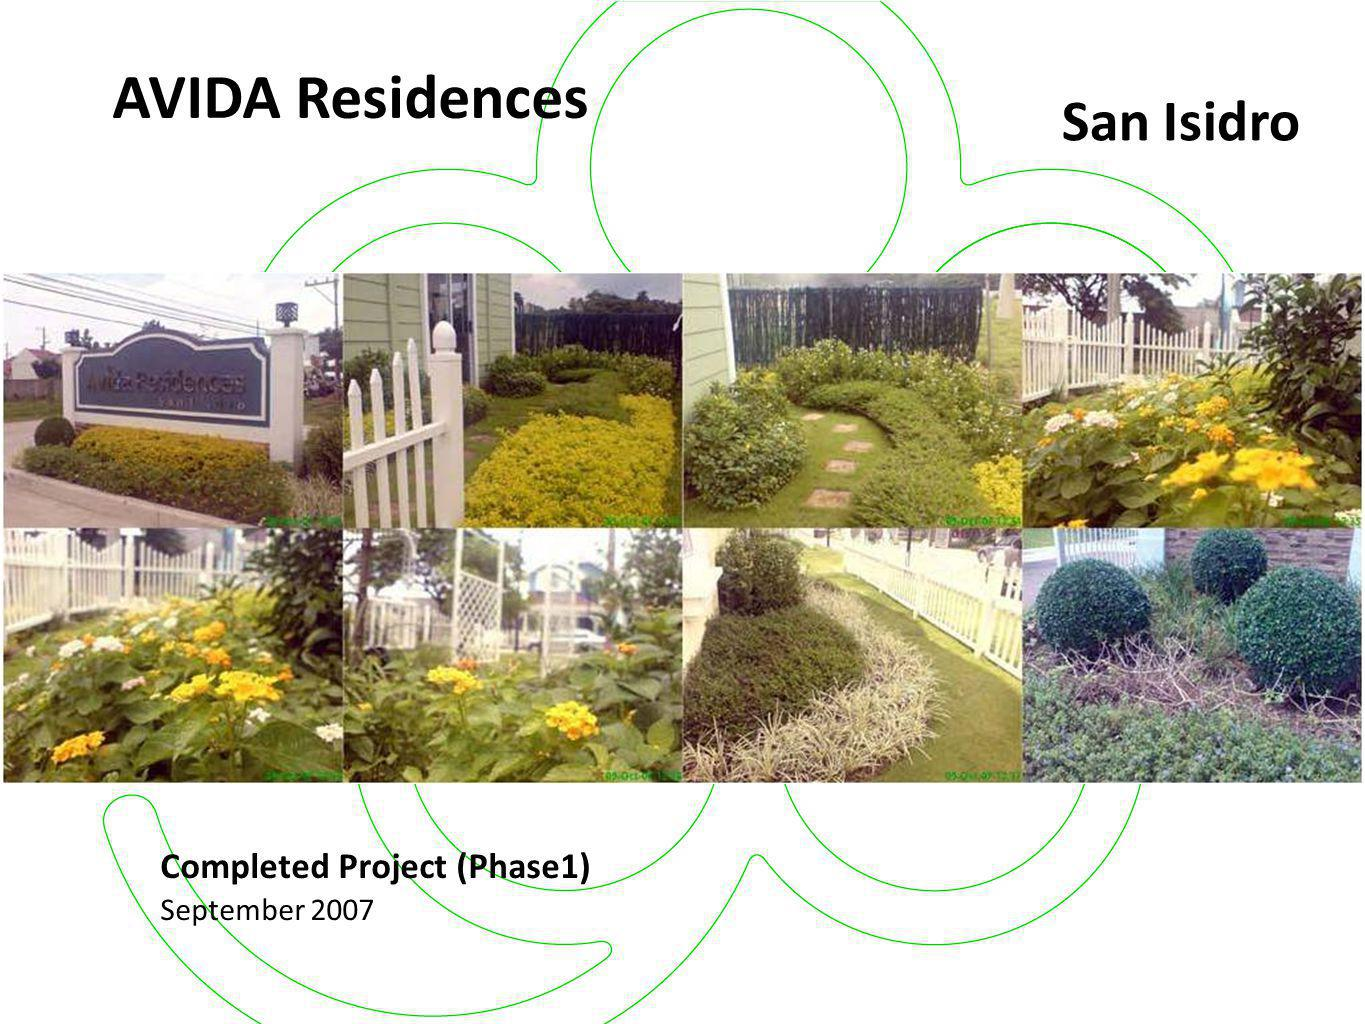 Completed Project (Phase1) September 2007 Avida Residences San Isidro May 2007